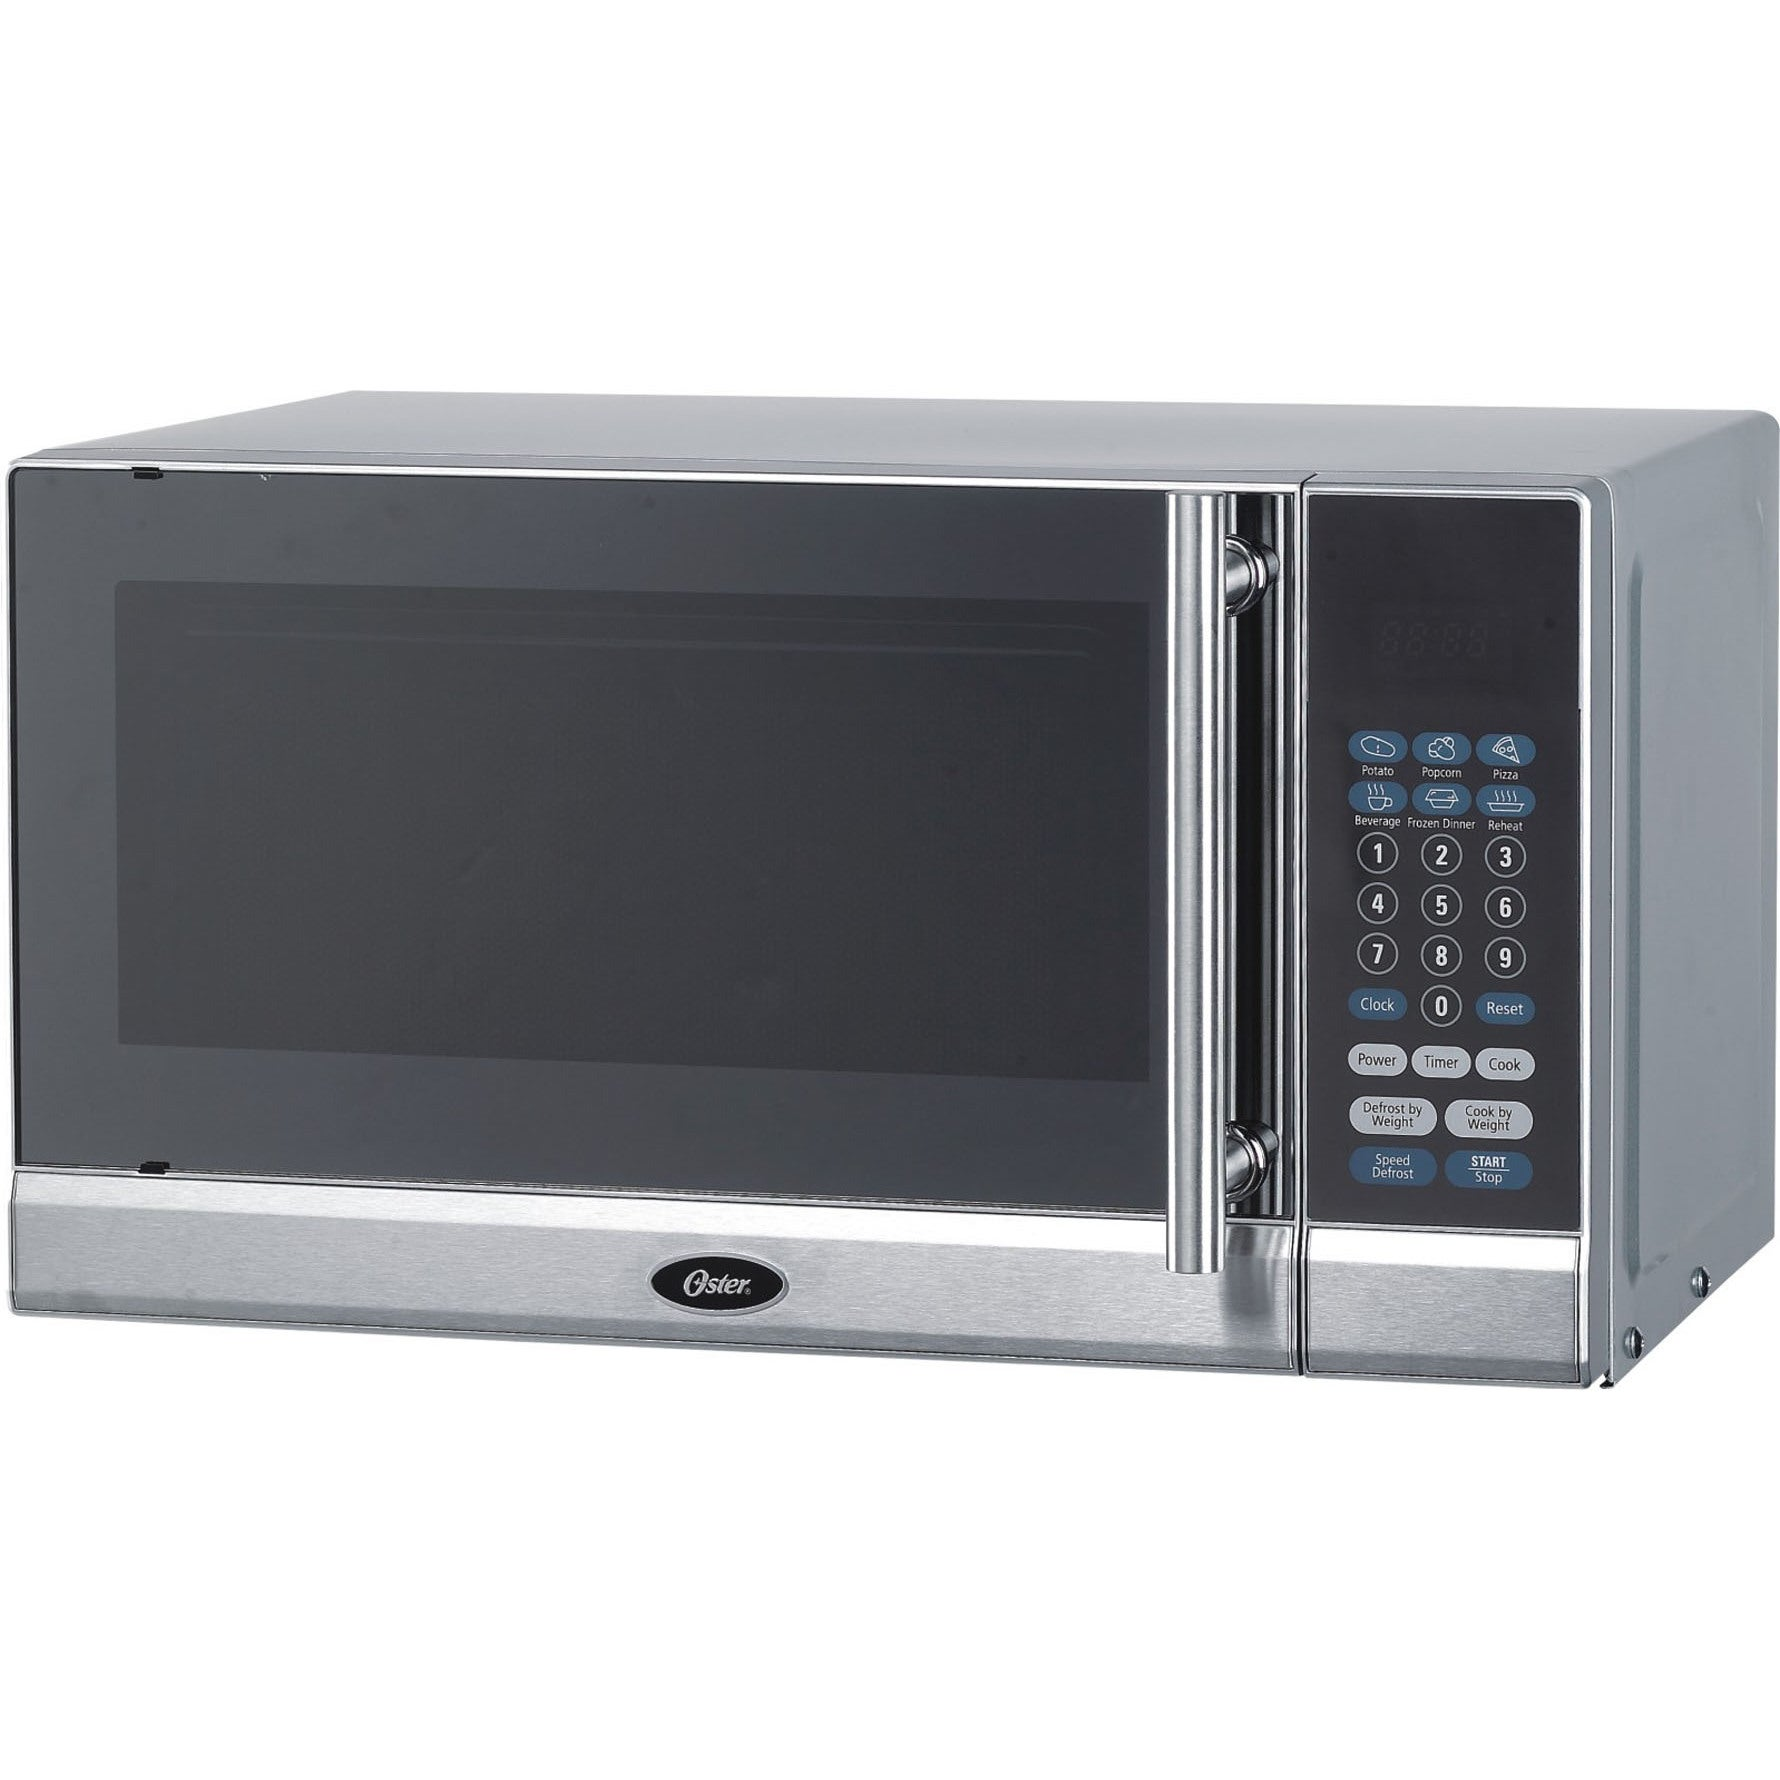 Oster OGG3701 Stainless Steel 0.7-Cubic Foot Microwave Oven at Sears.com